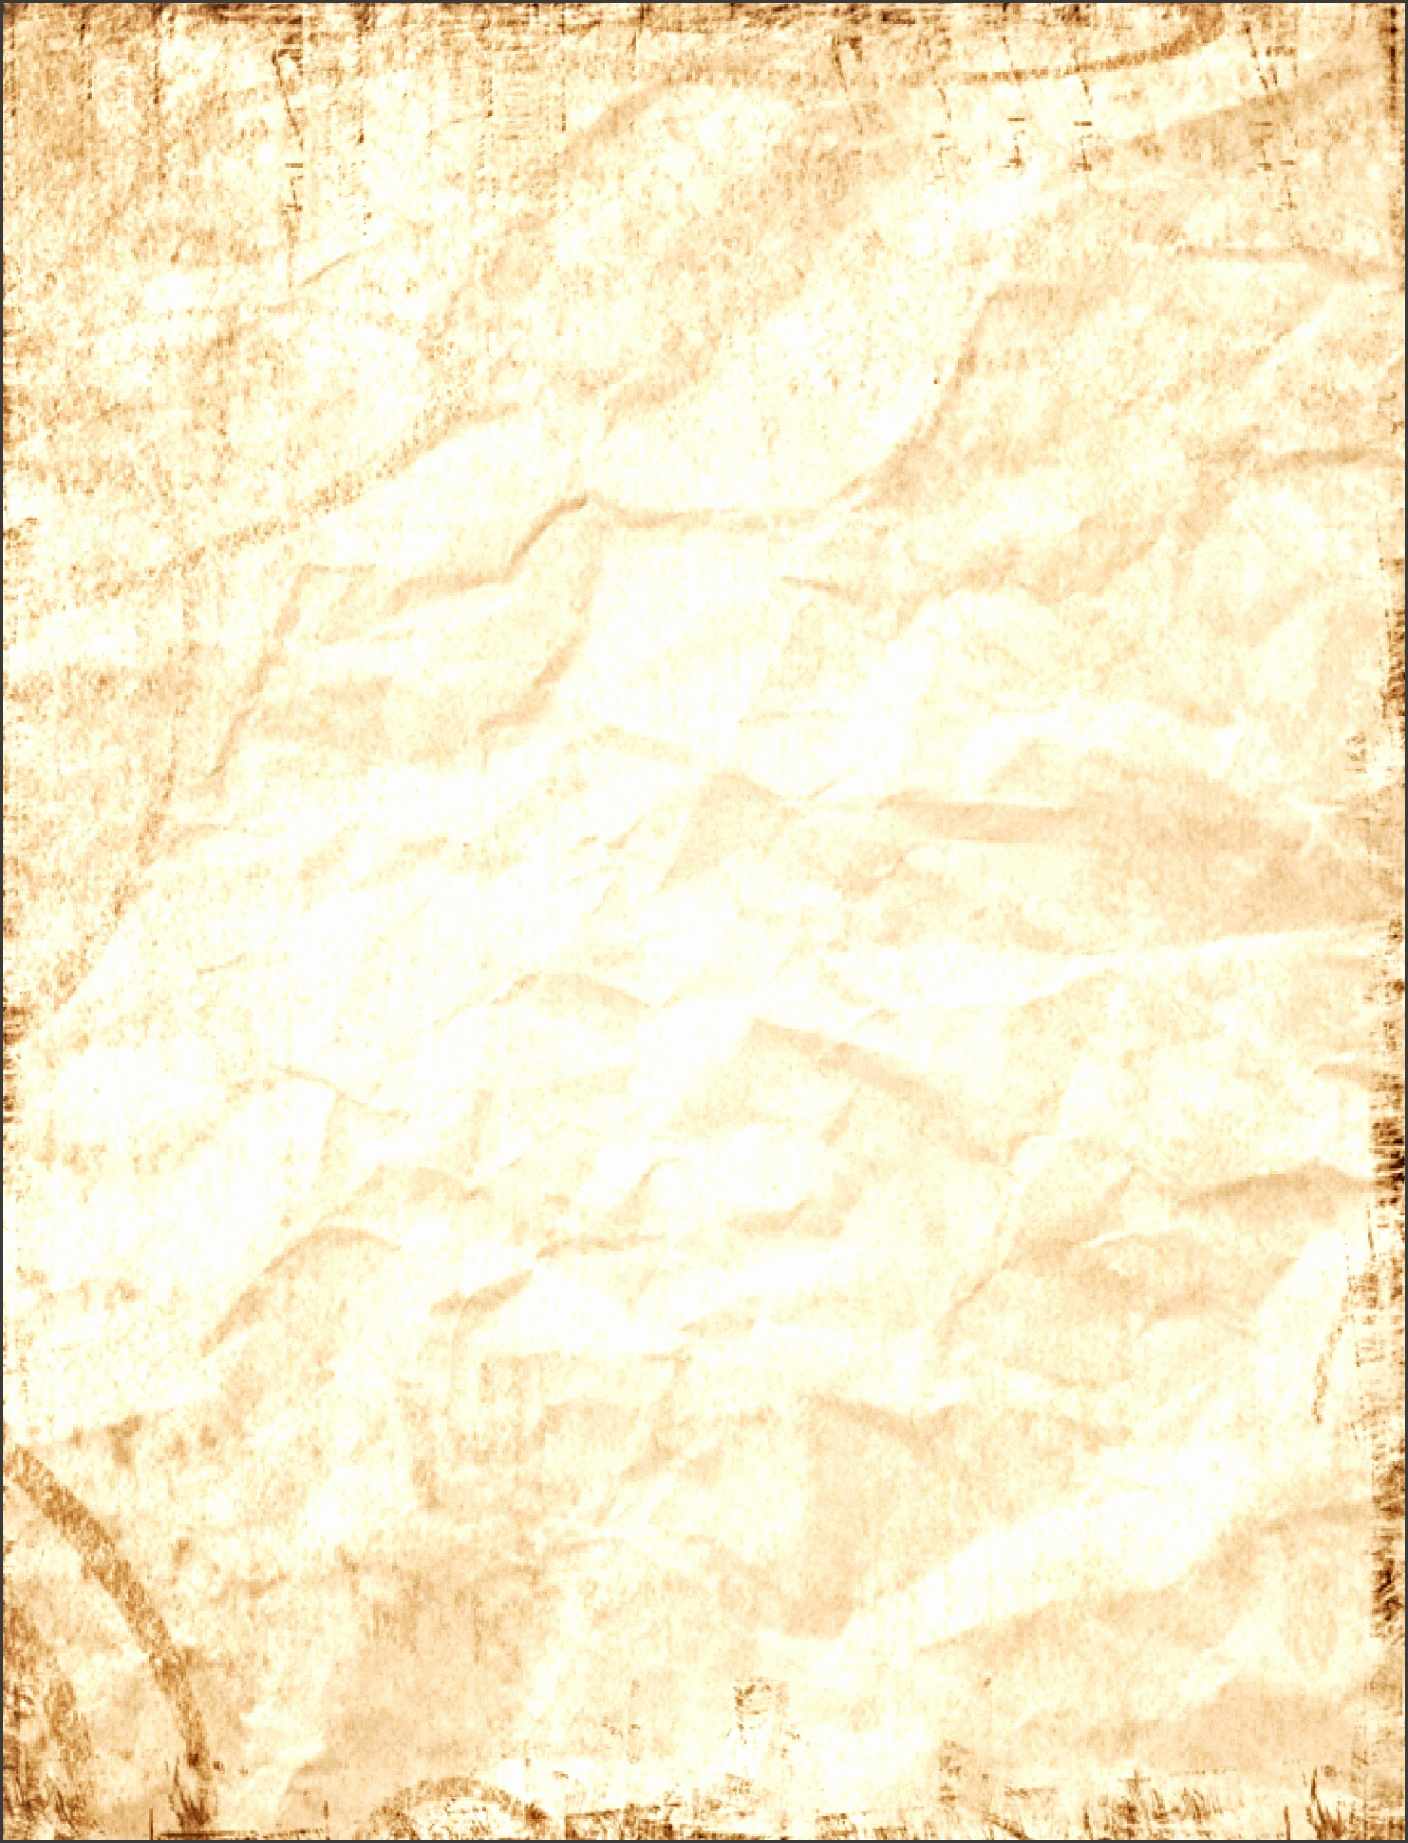 Vintage Paper Texture by MGB Stock